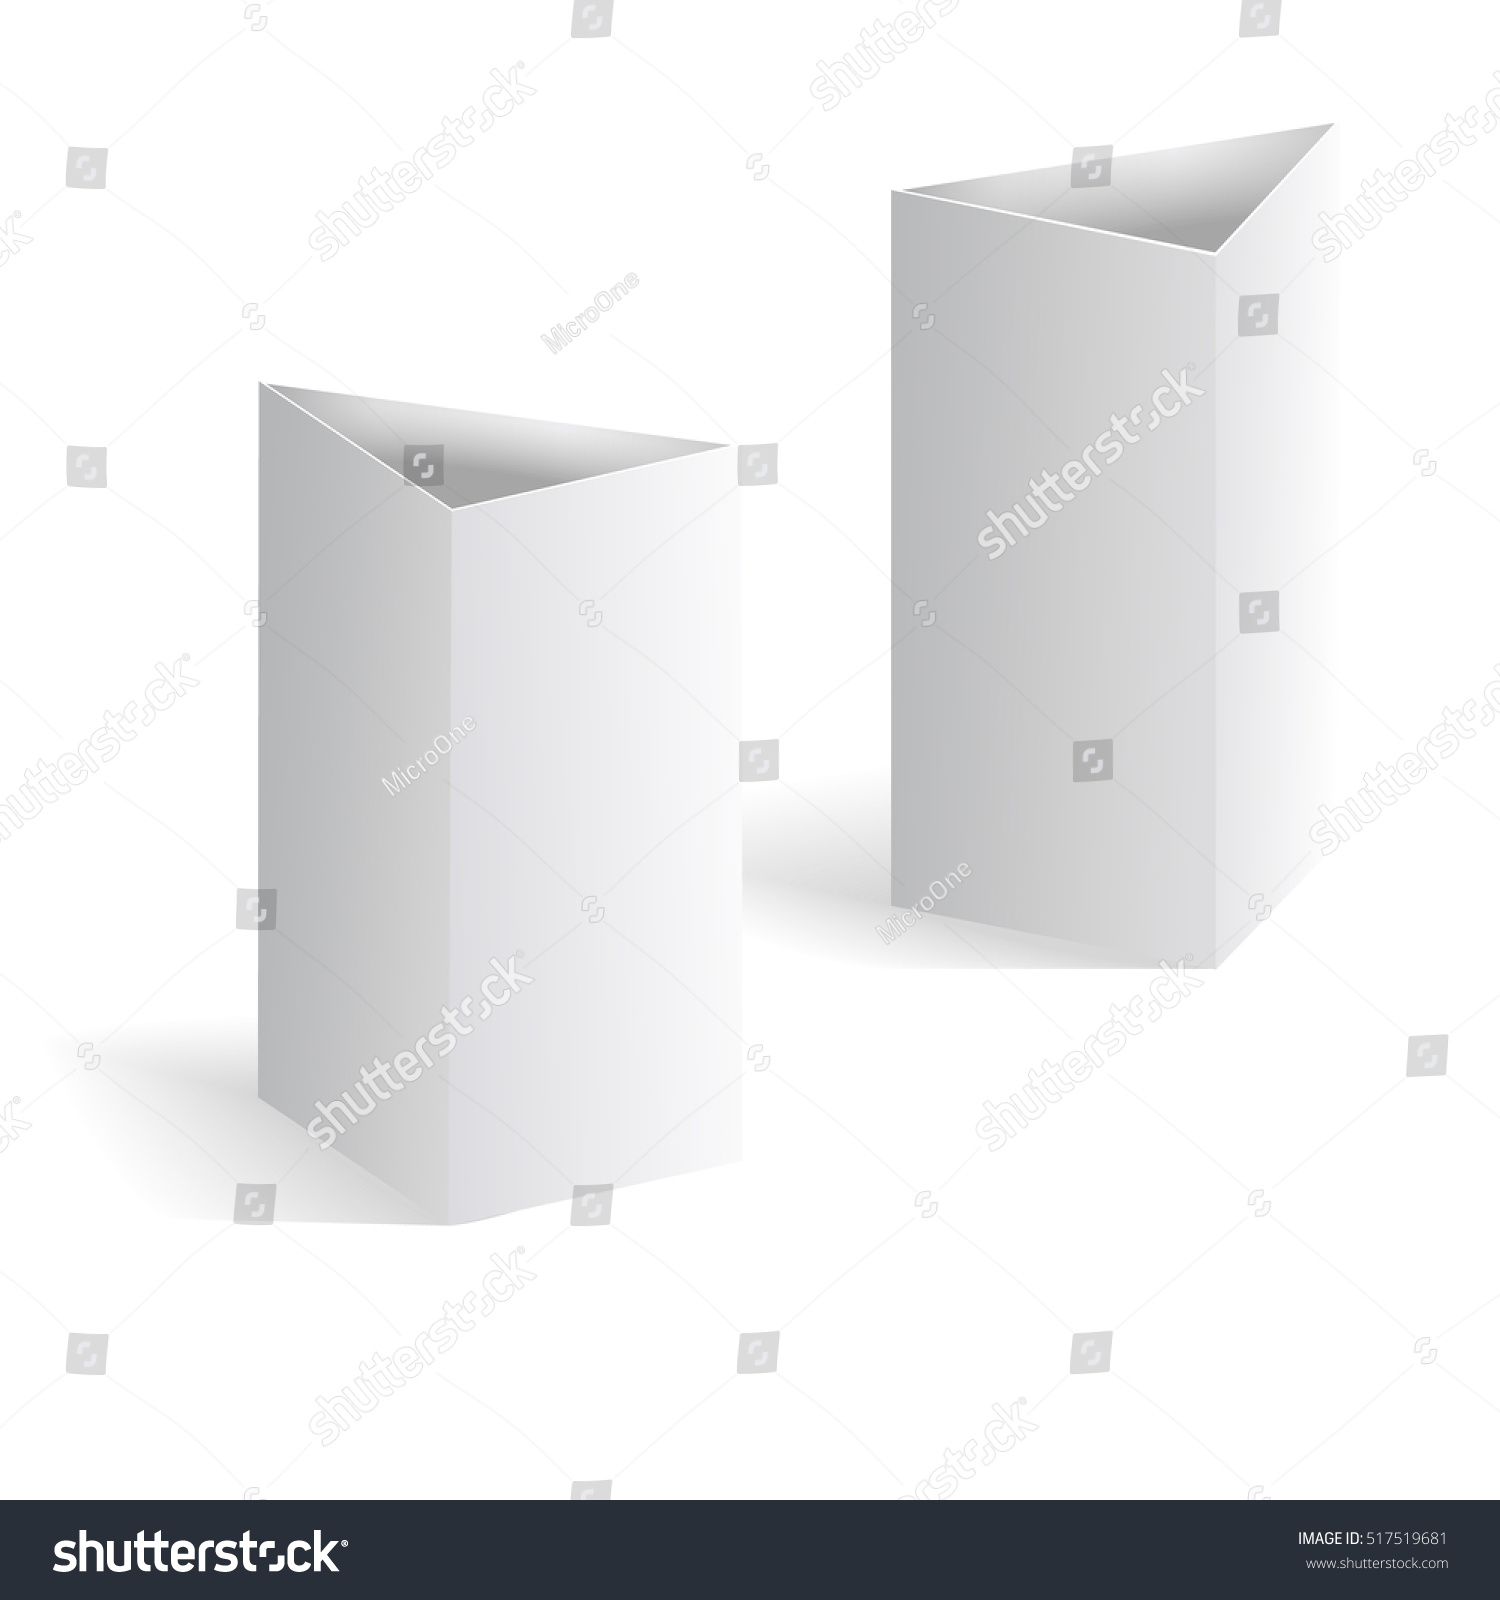 hight resolution of white blank table tent vertical triangle cards isolated on white background template of blank